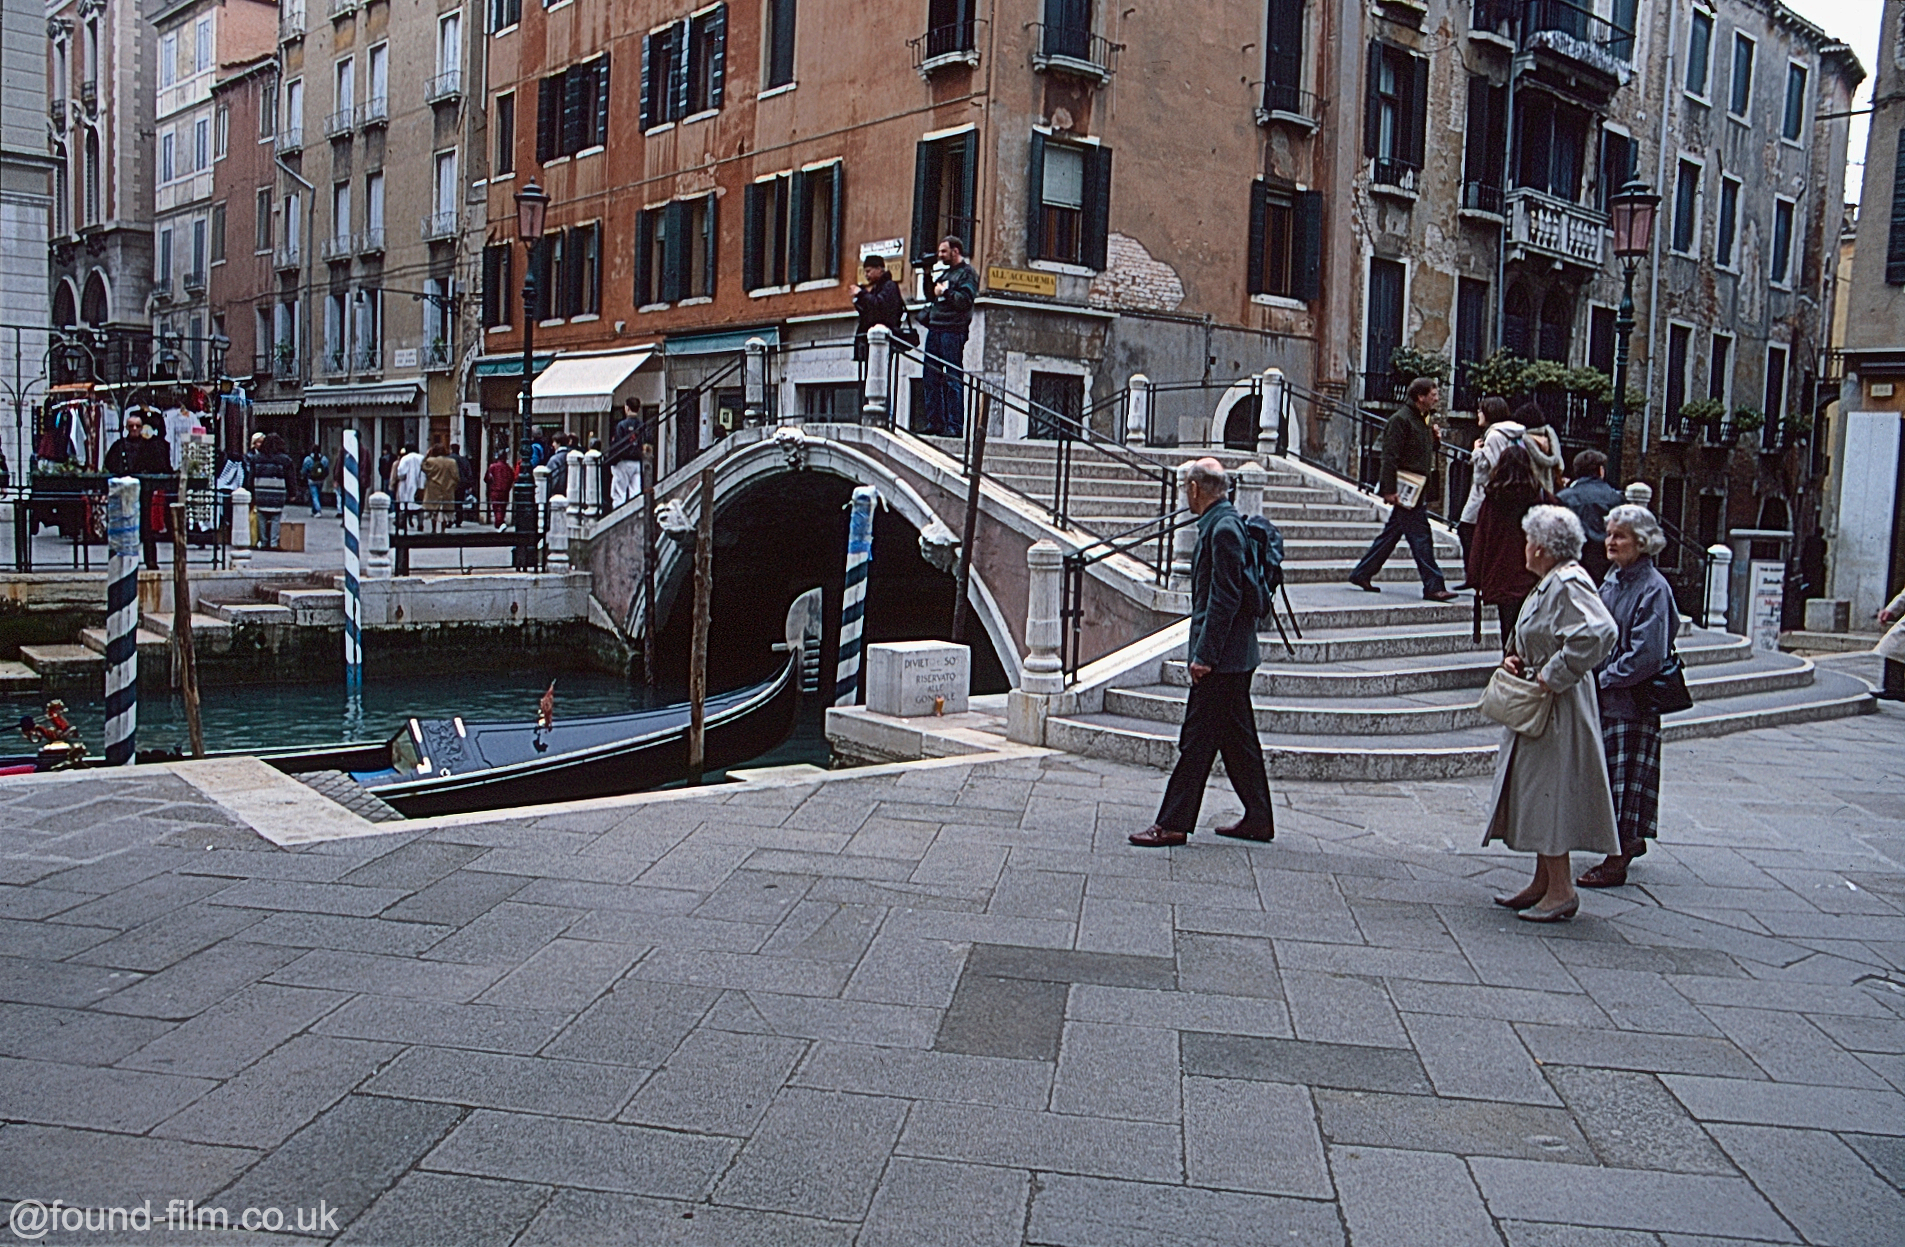 Snapshots in time: Pictures of Venice in 1996